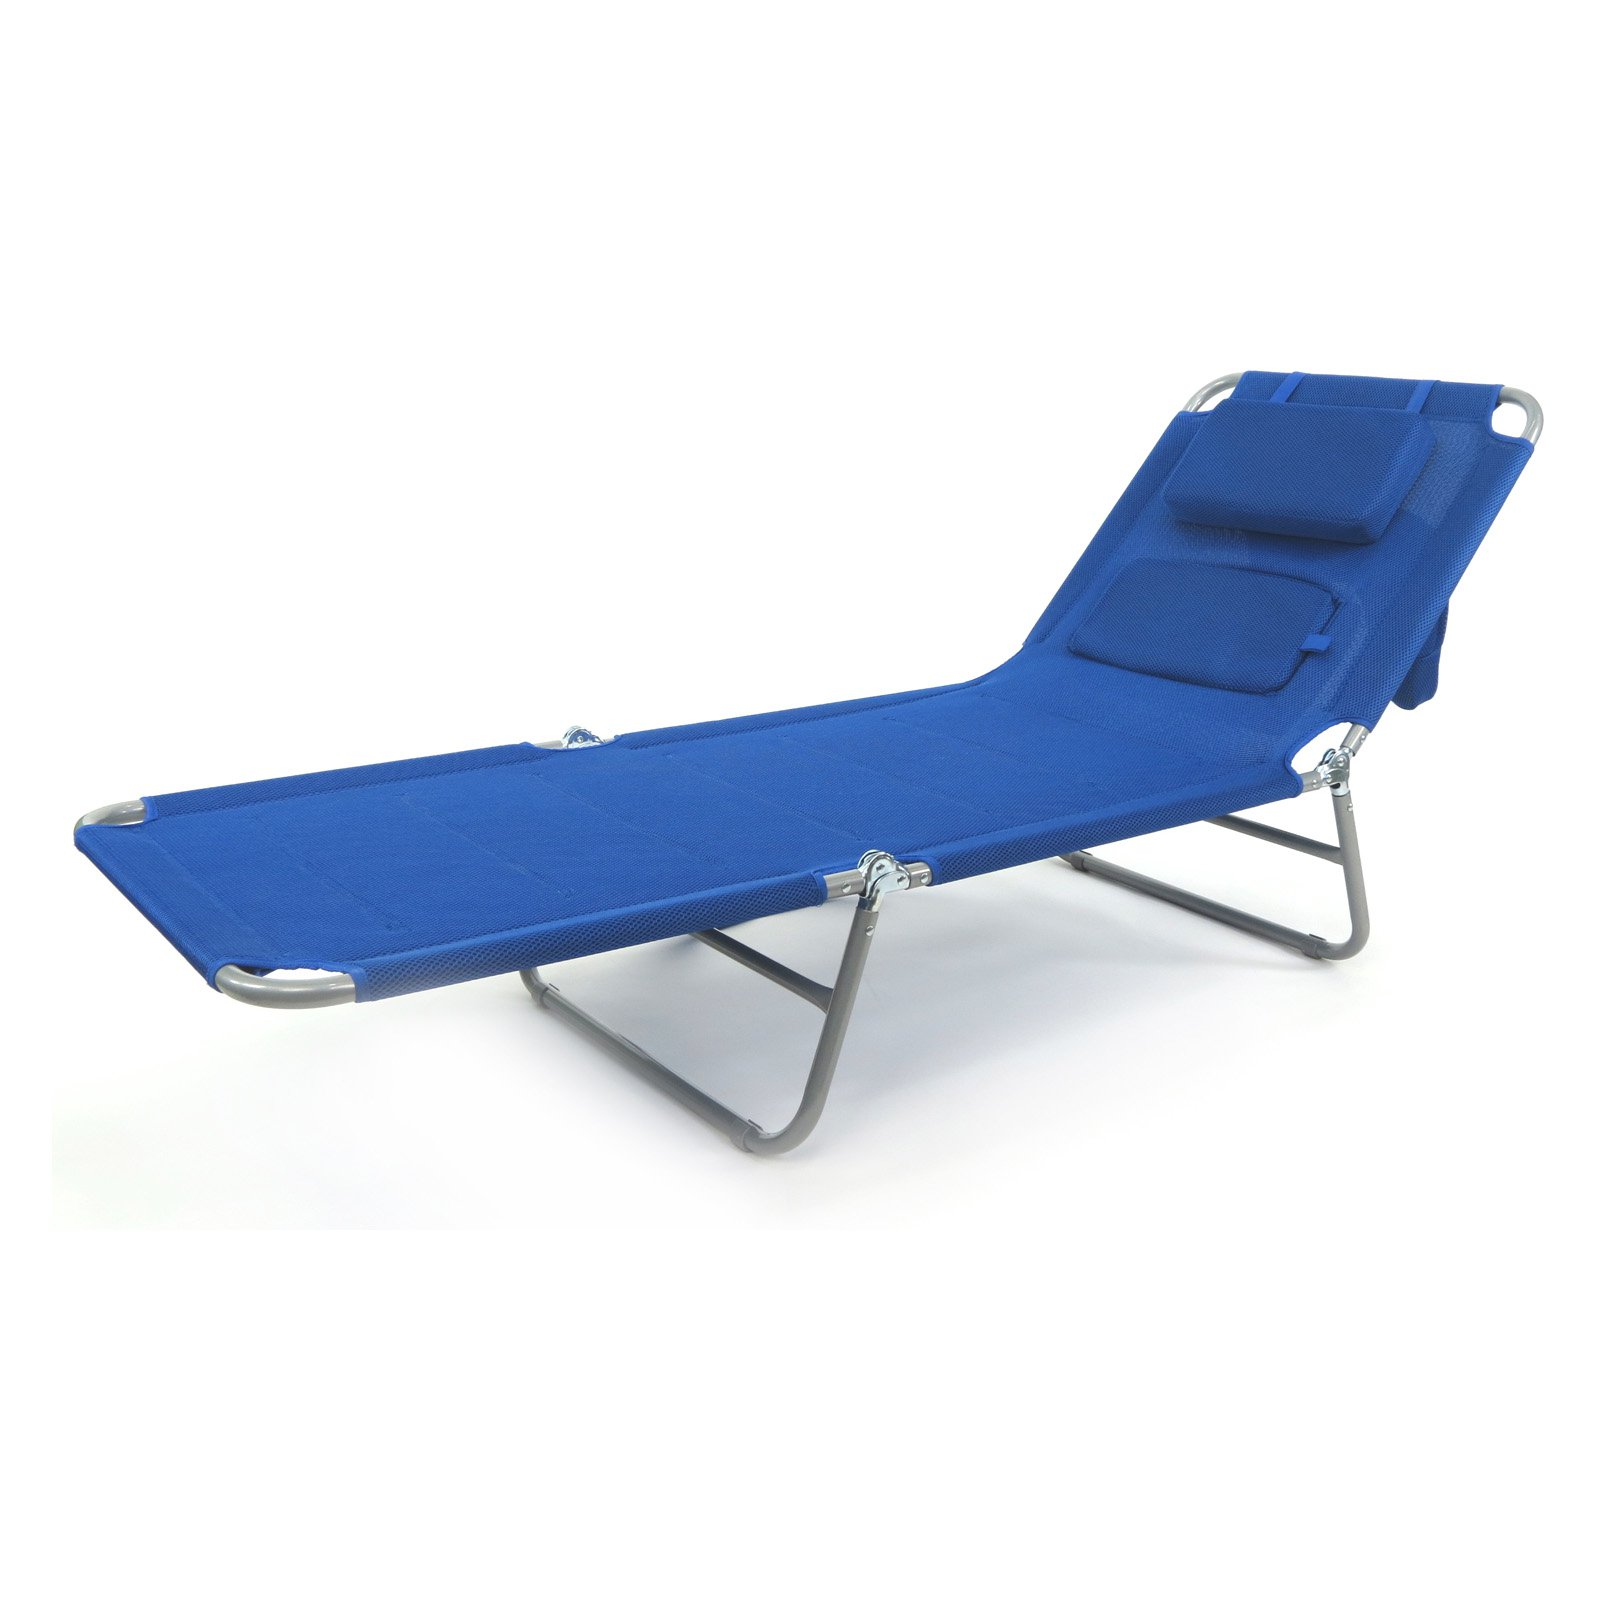 Ergo Lounger Lady Beach Lounger